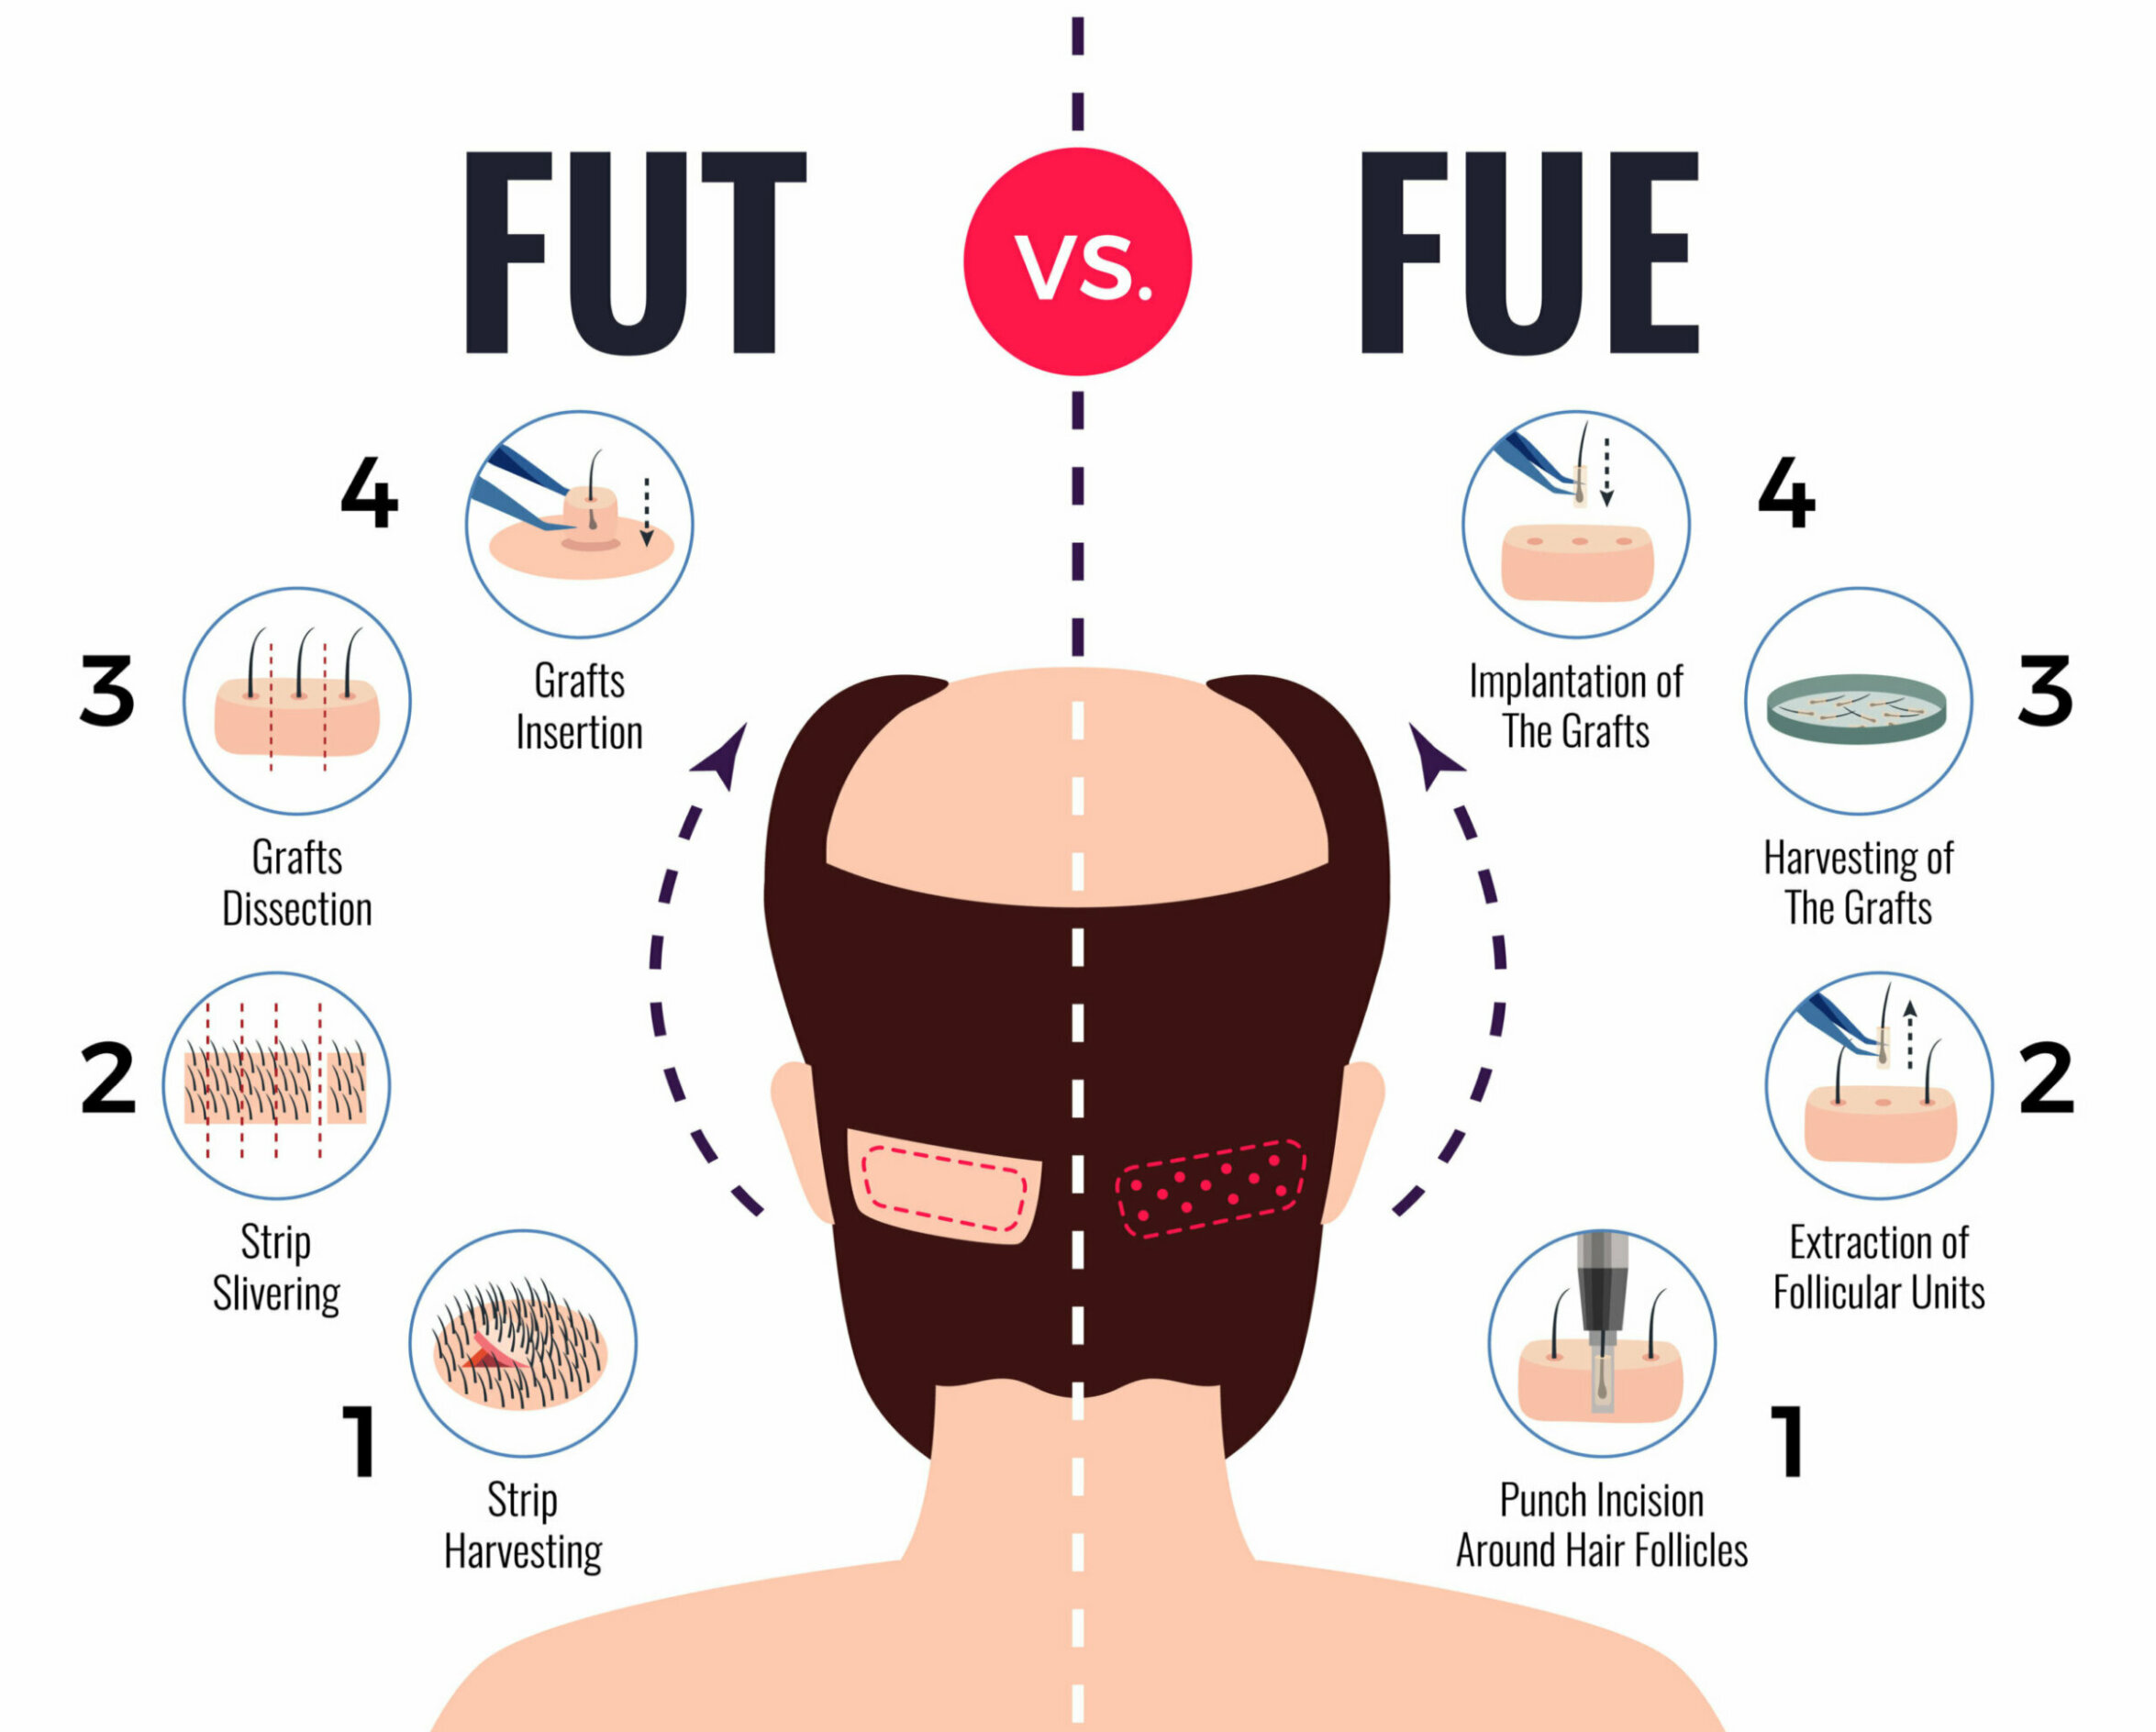 An infographic showing the difference between the hair transplant procedures follicular unit extraction (FUE) and follicular unit transplantation (FUT)